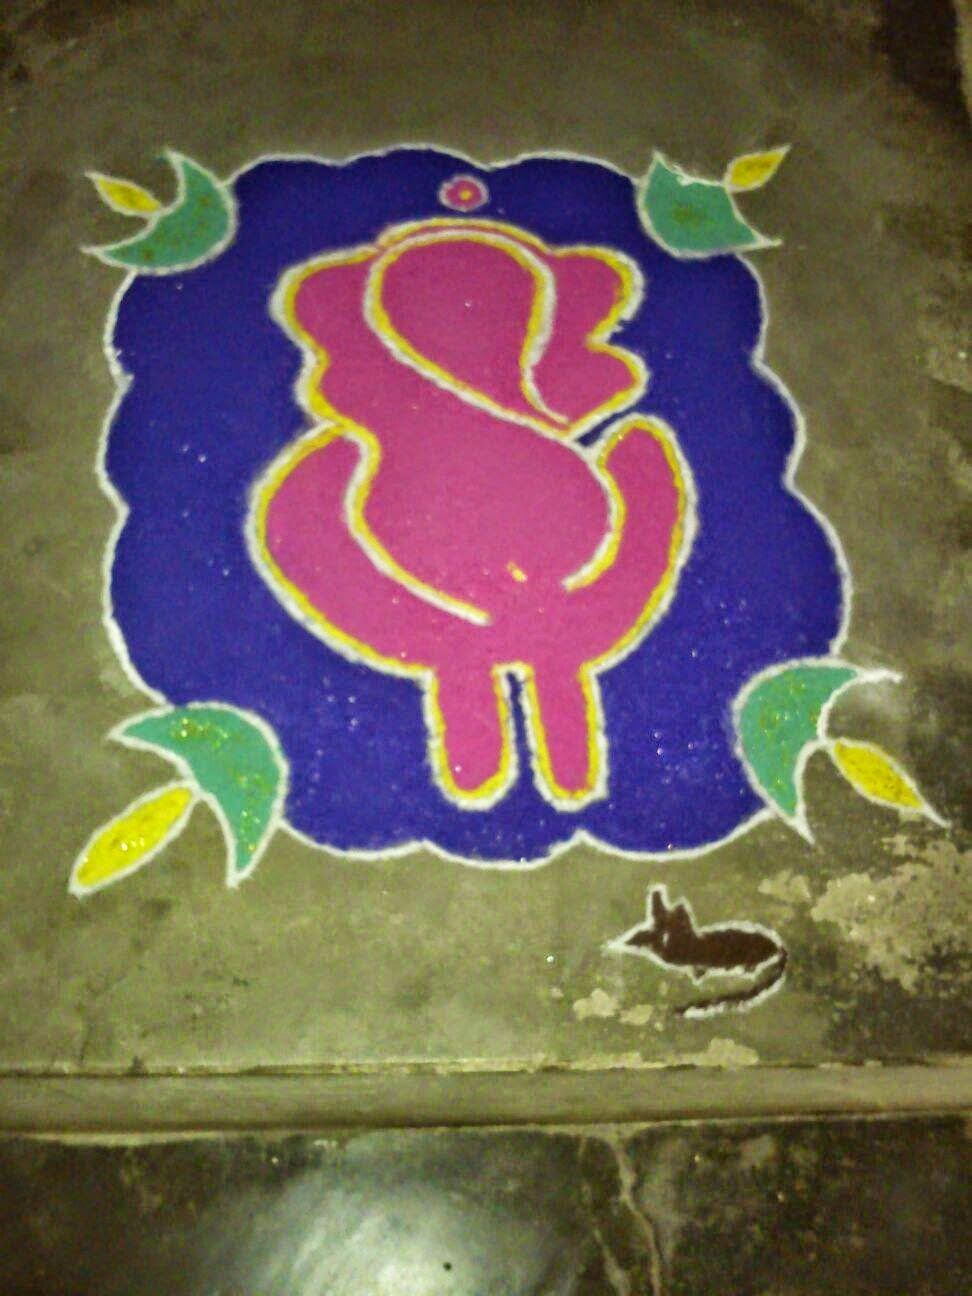 Rangoli Designs for Kids 1. 25  Easy and Creative Rangoli Designs for Kids with Visuals